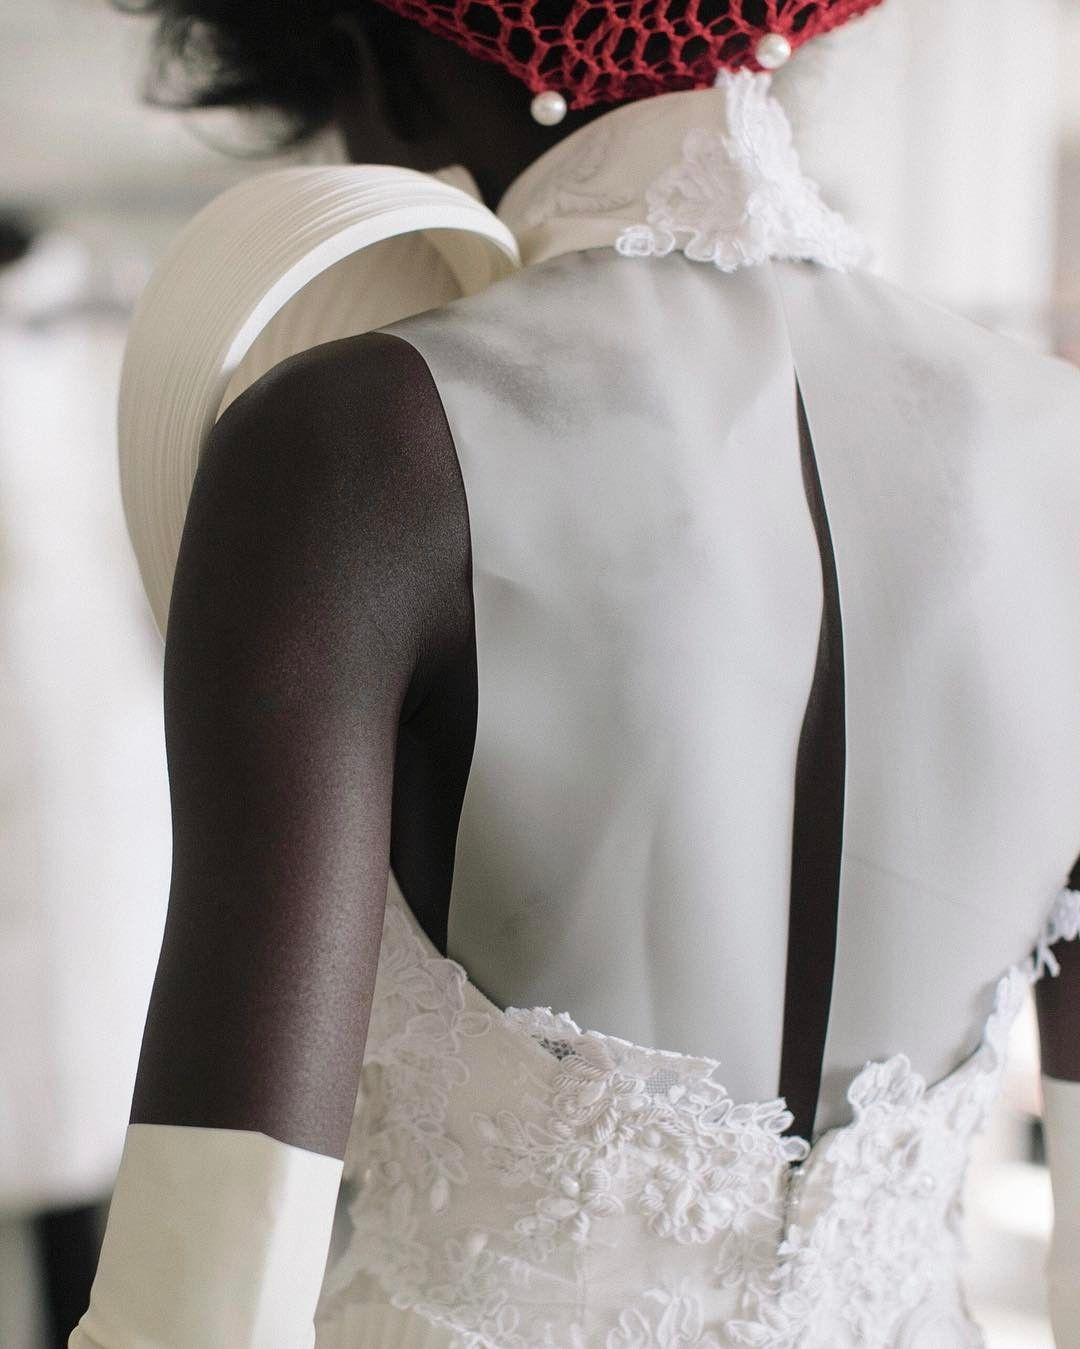 Latex wedding dress  Thom Browne thombrowneny  Details Style    Pinterest